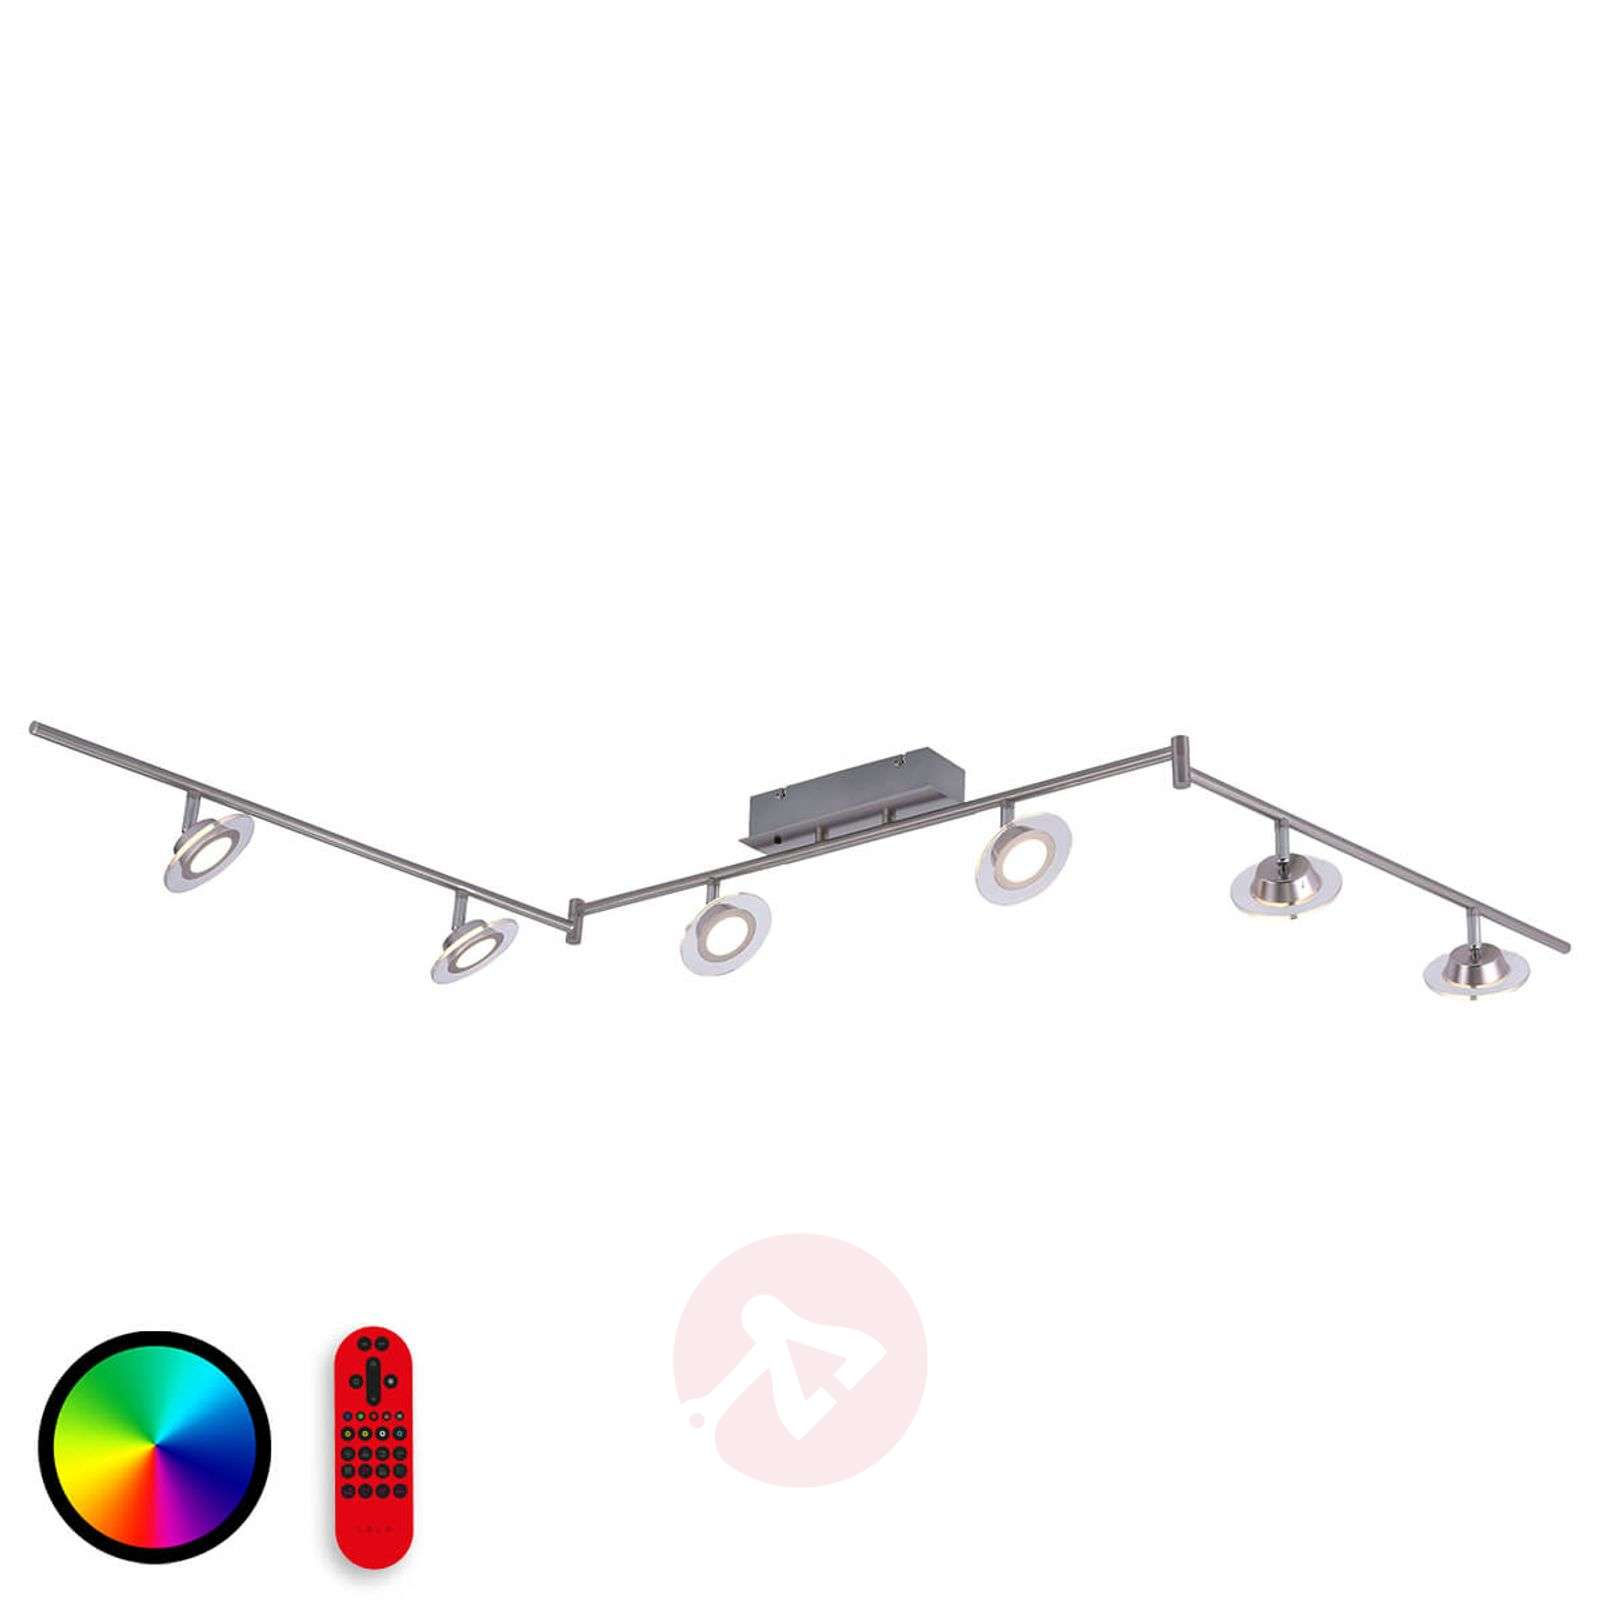 Plafonnier LED fonctionnel Lola-Mike à 6 lampes-6002849-01